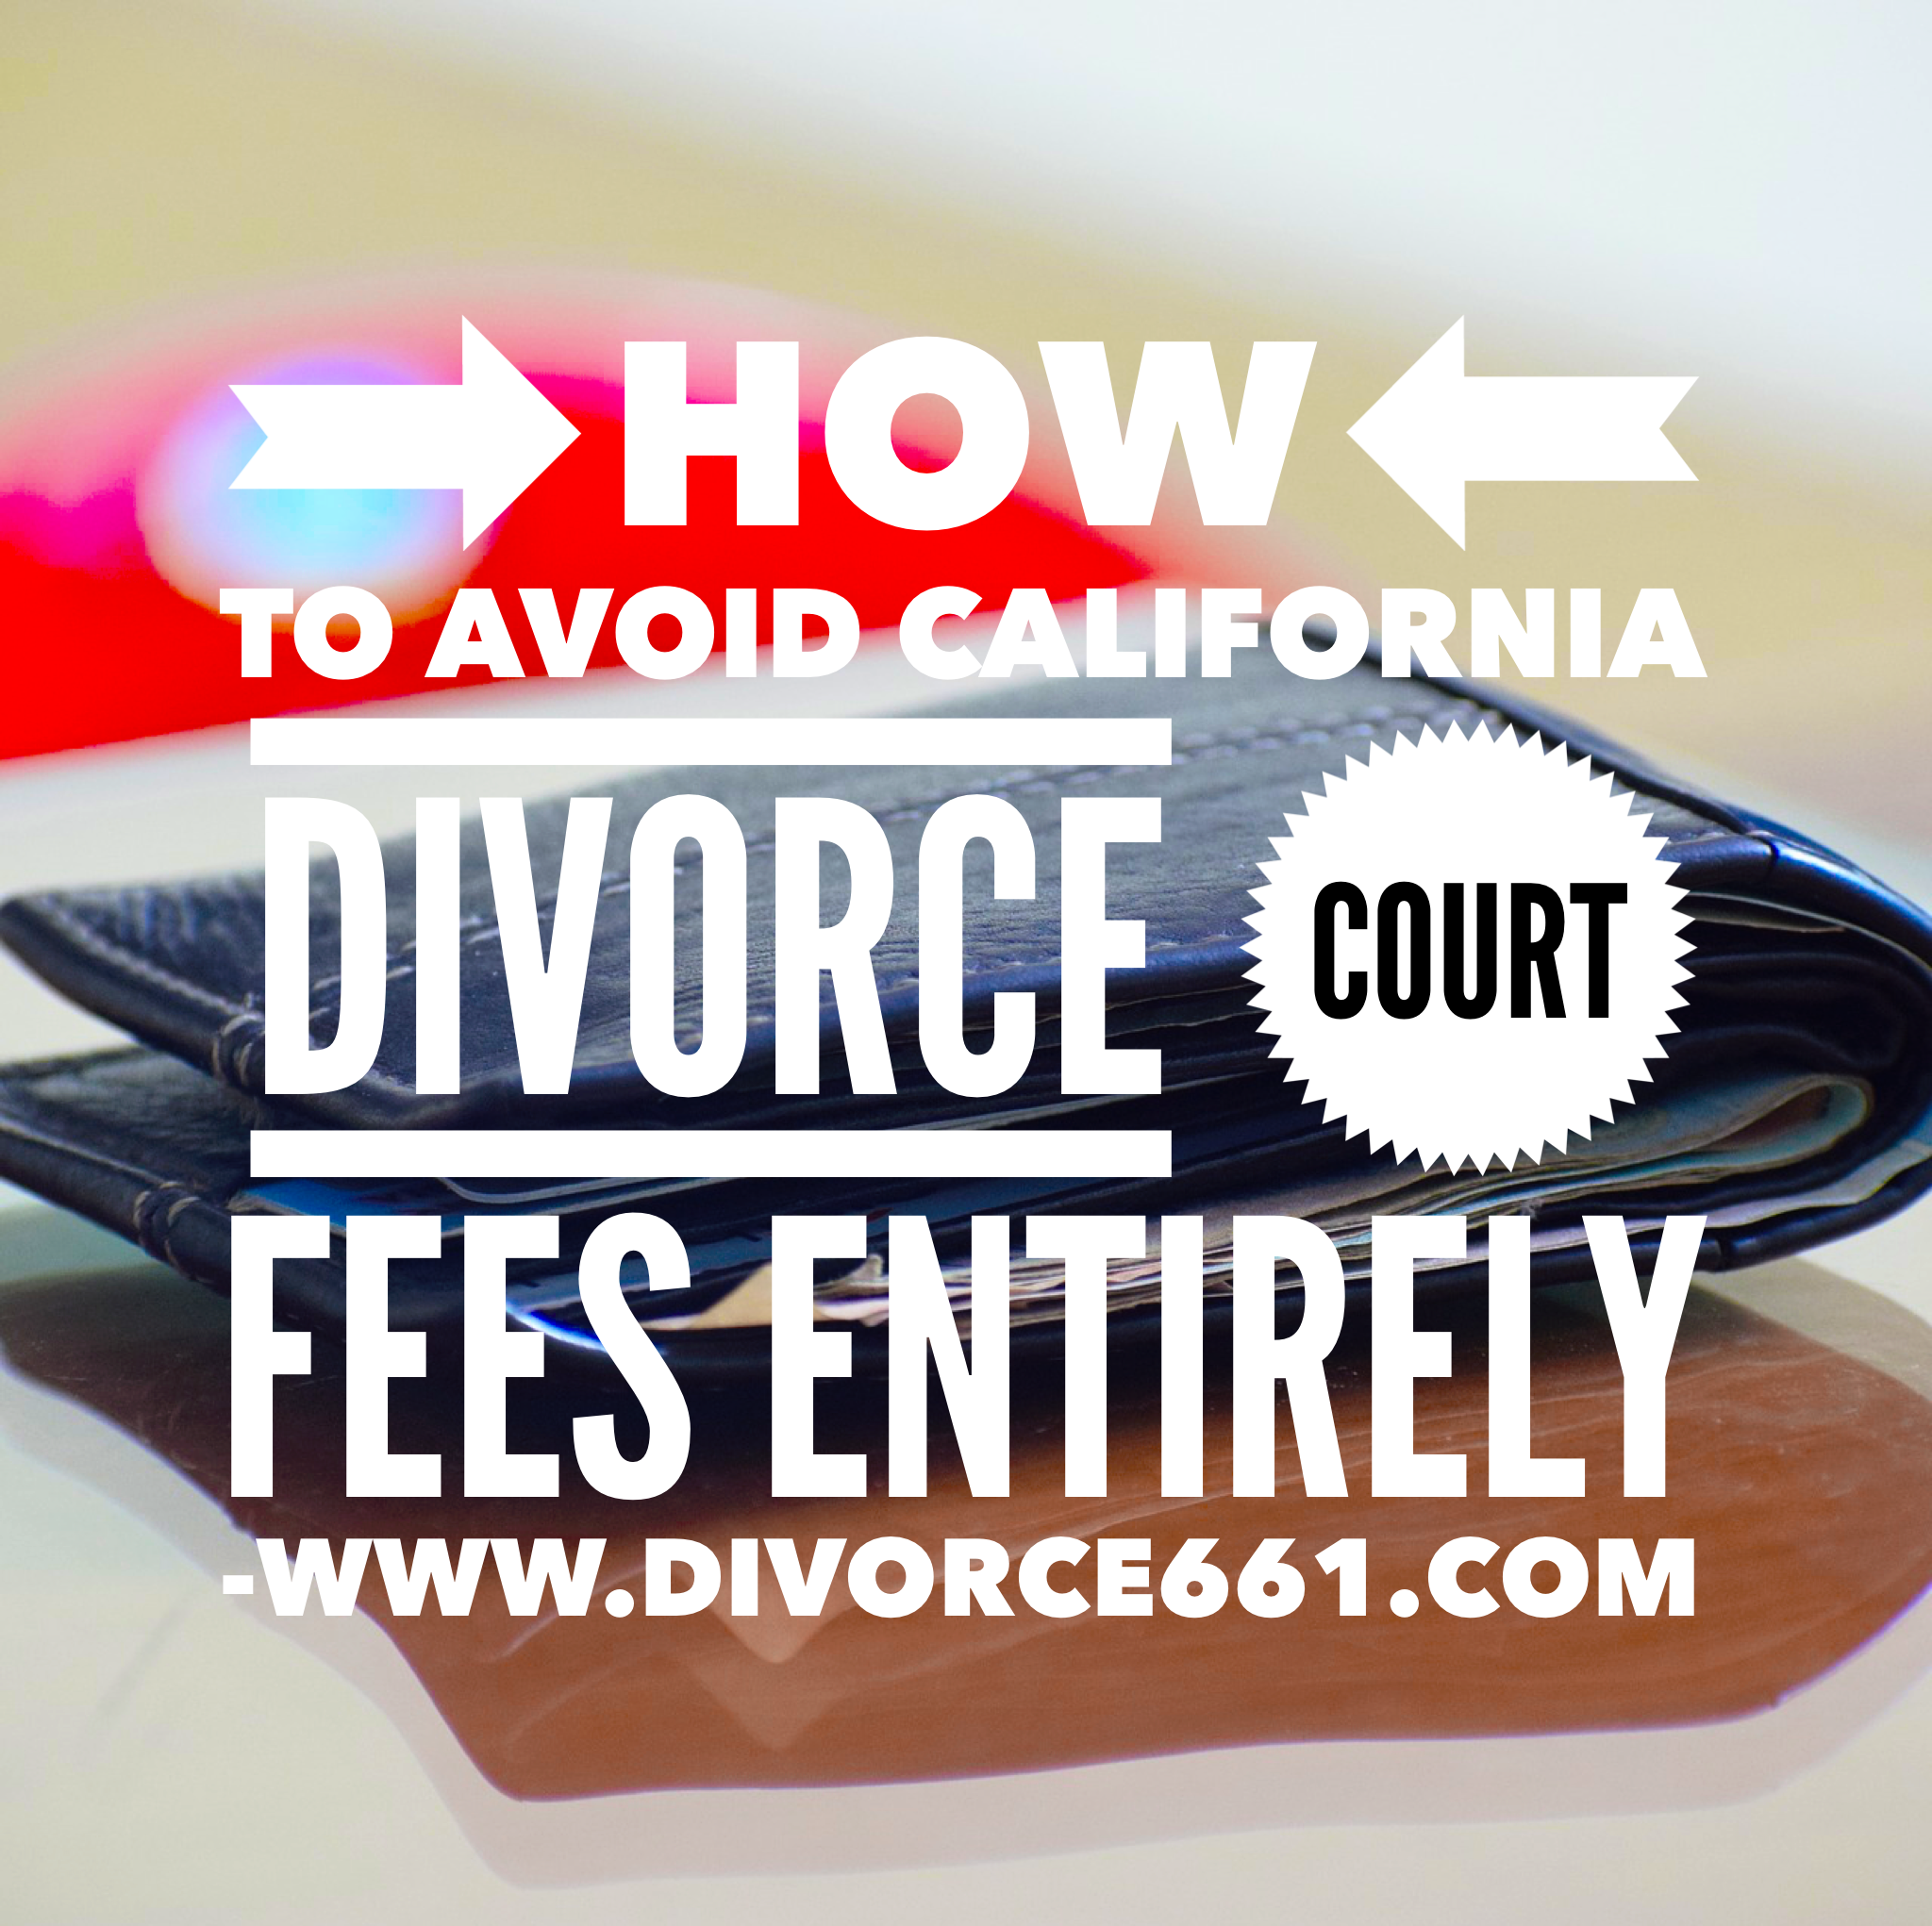 Divorce Court Records: California Divorce And How To Avoid Paying Court Fees